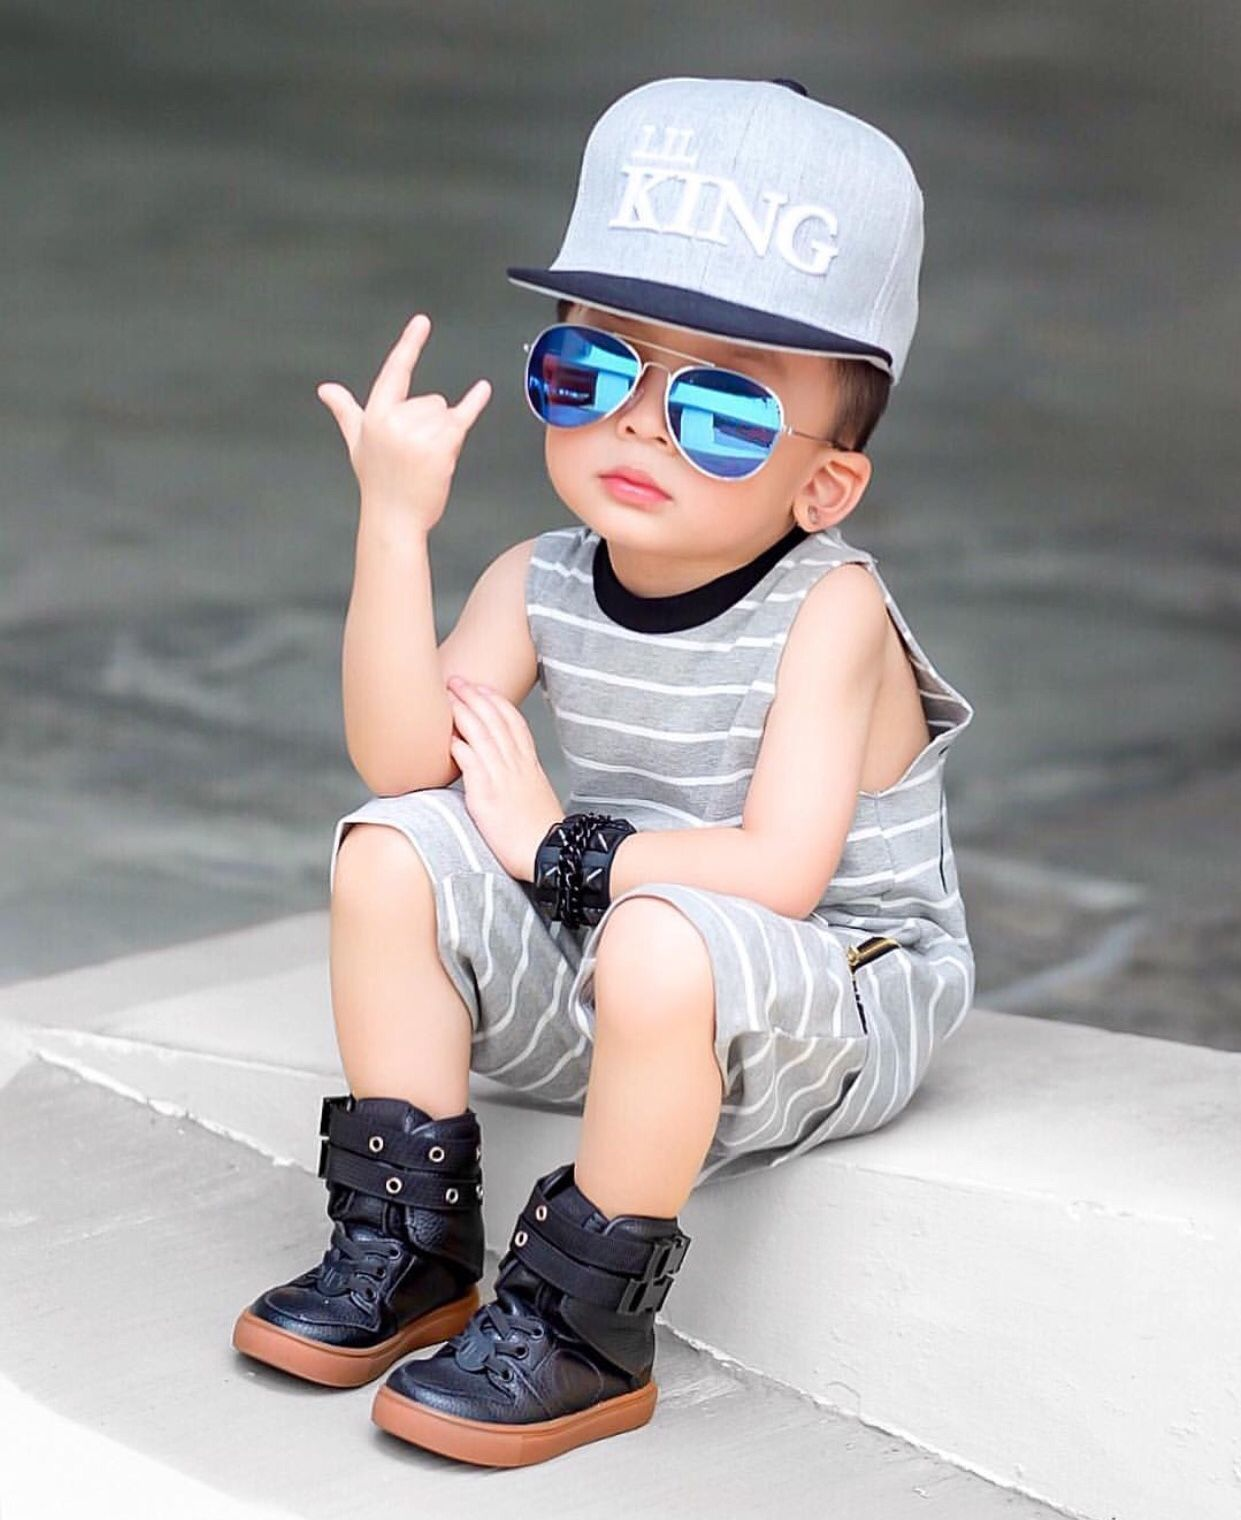 Boys HD Cool Stylish Profile Pics DPs For Facebook